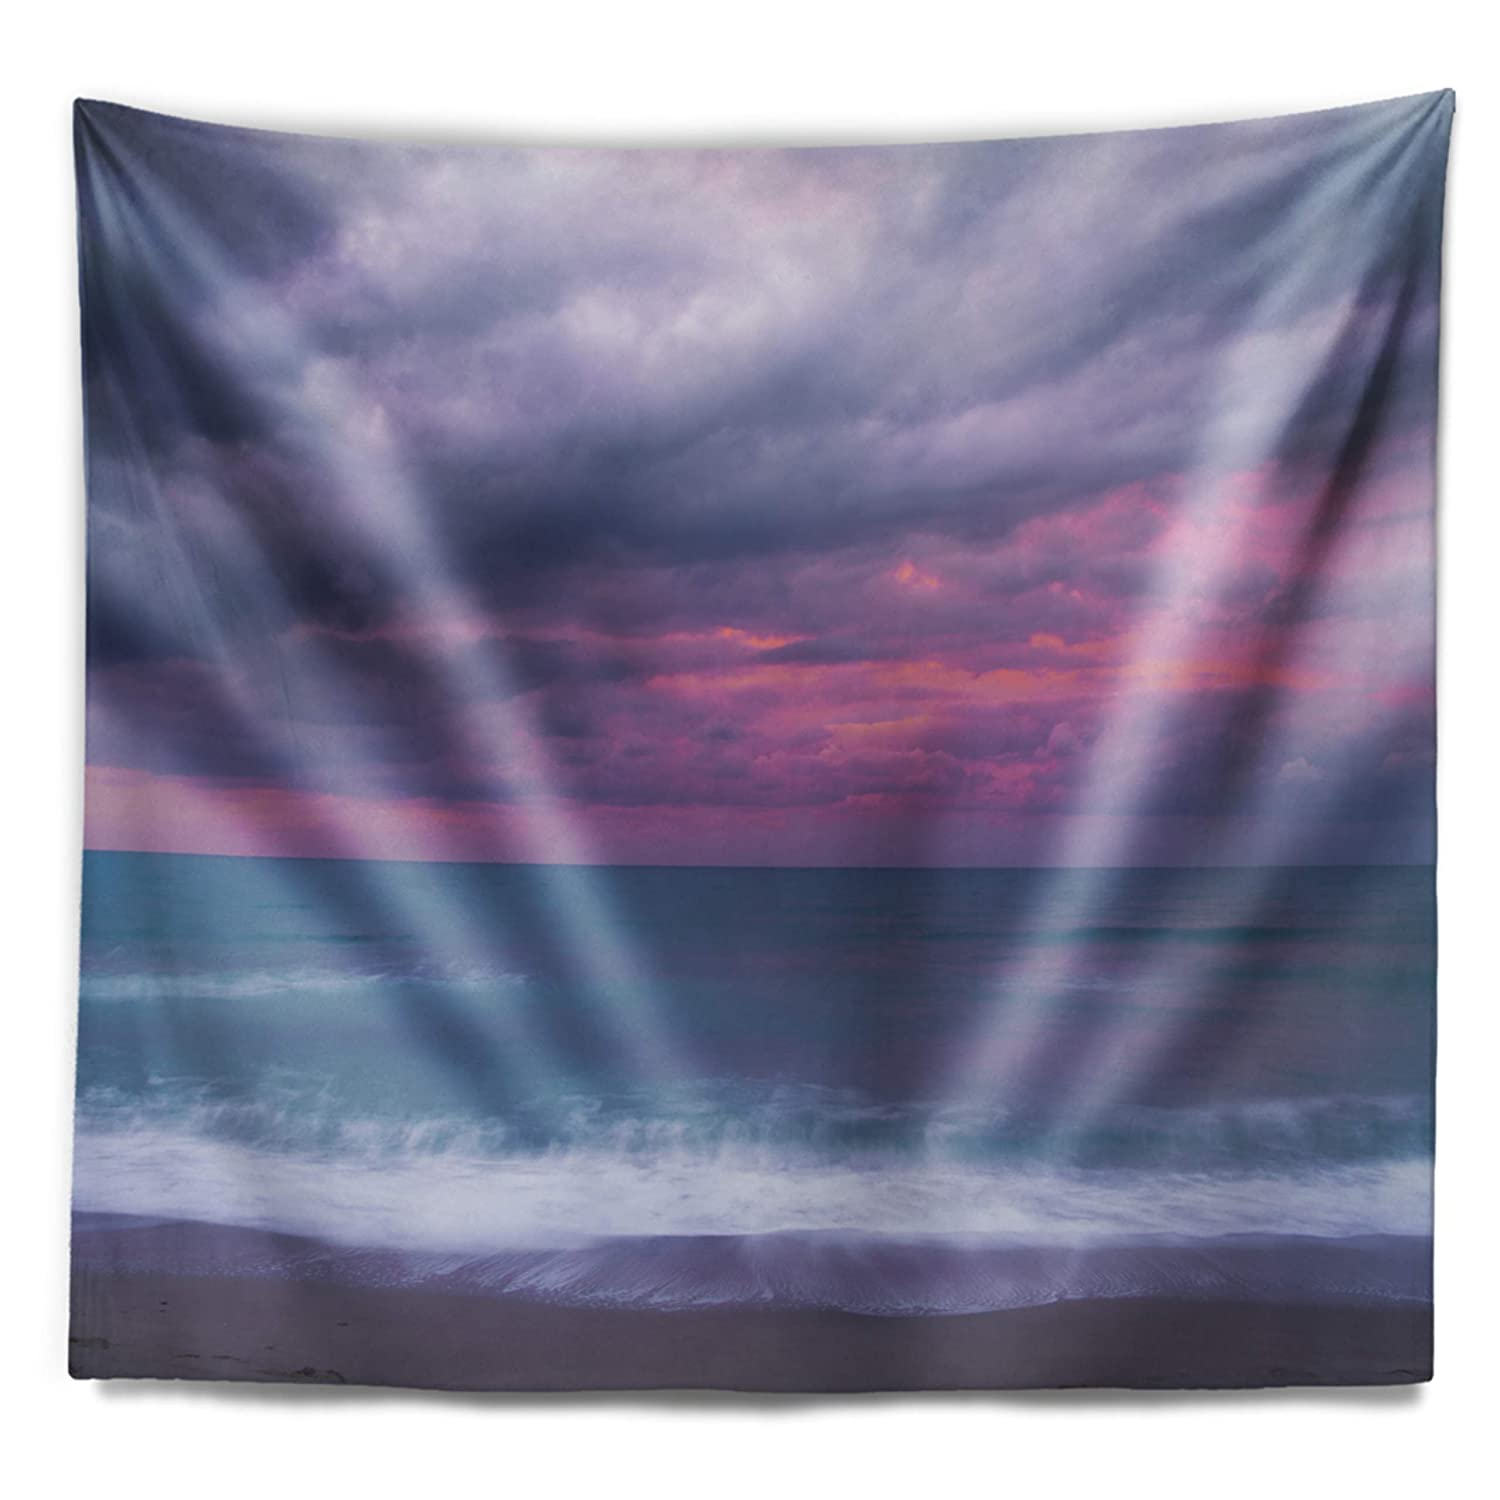 Designart TAP14674-39-32  Blue and Pink Unset Over Sea Seashore Blanket D/écor Art for Home and Office Wall Tapestry Medium 39 in x 32 in Created On Lightweight Polyester Fabric